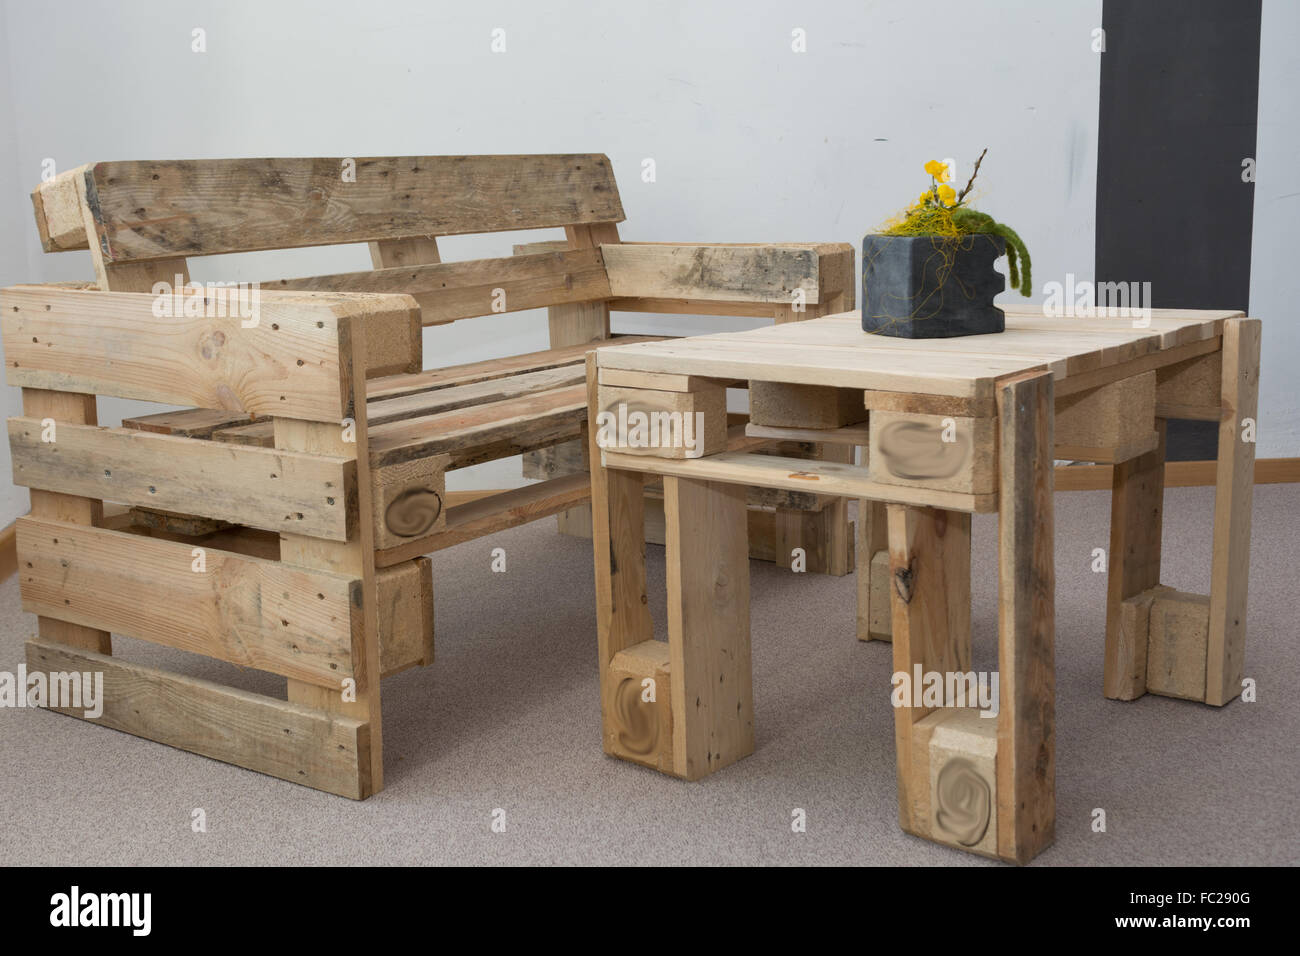 upcycling möbel aus paletten stockfoto, bild: 93478688 - alamy